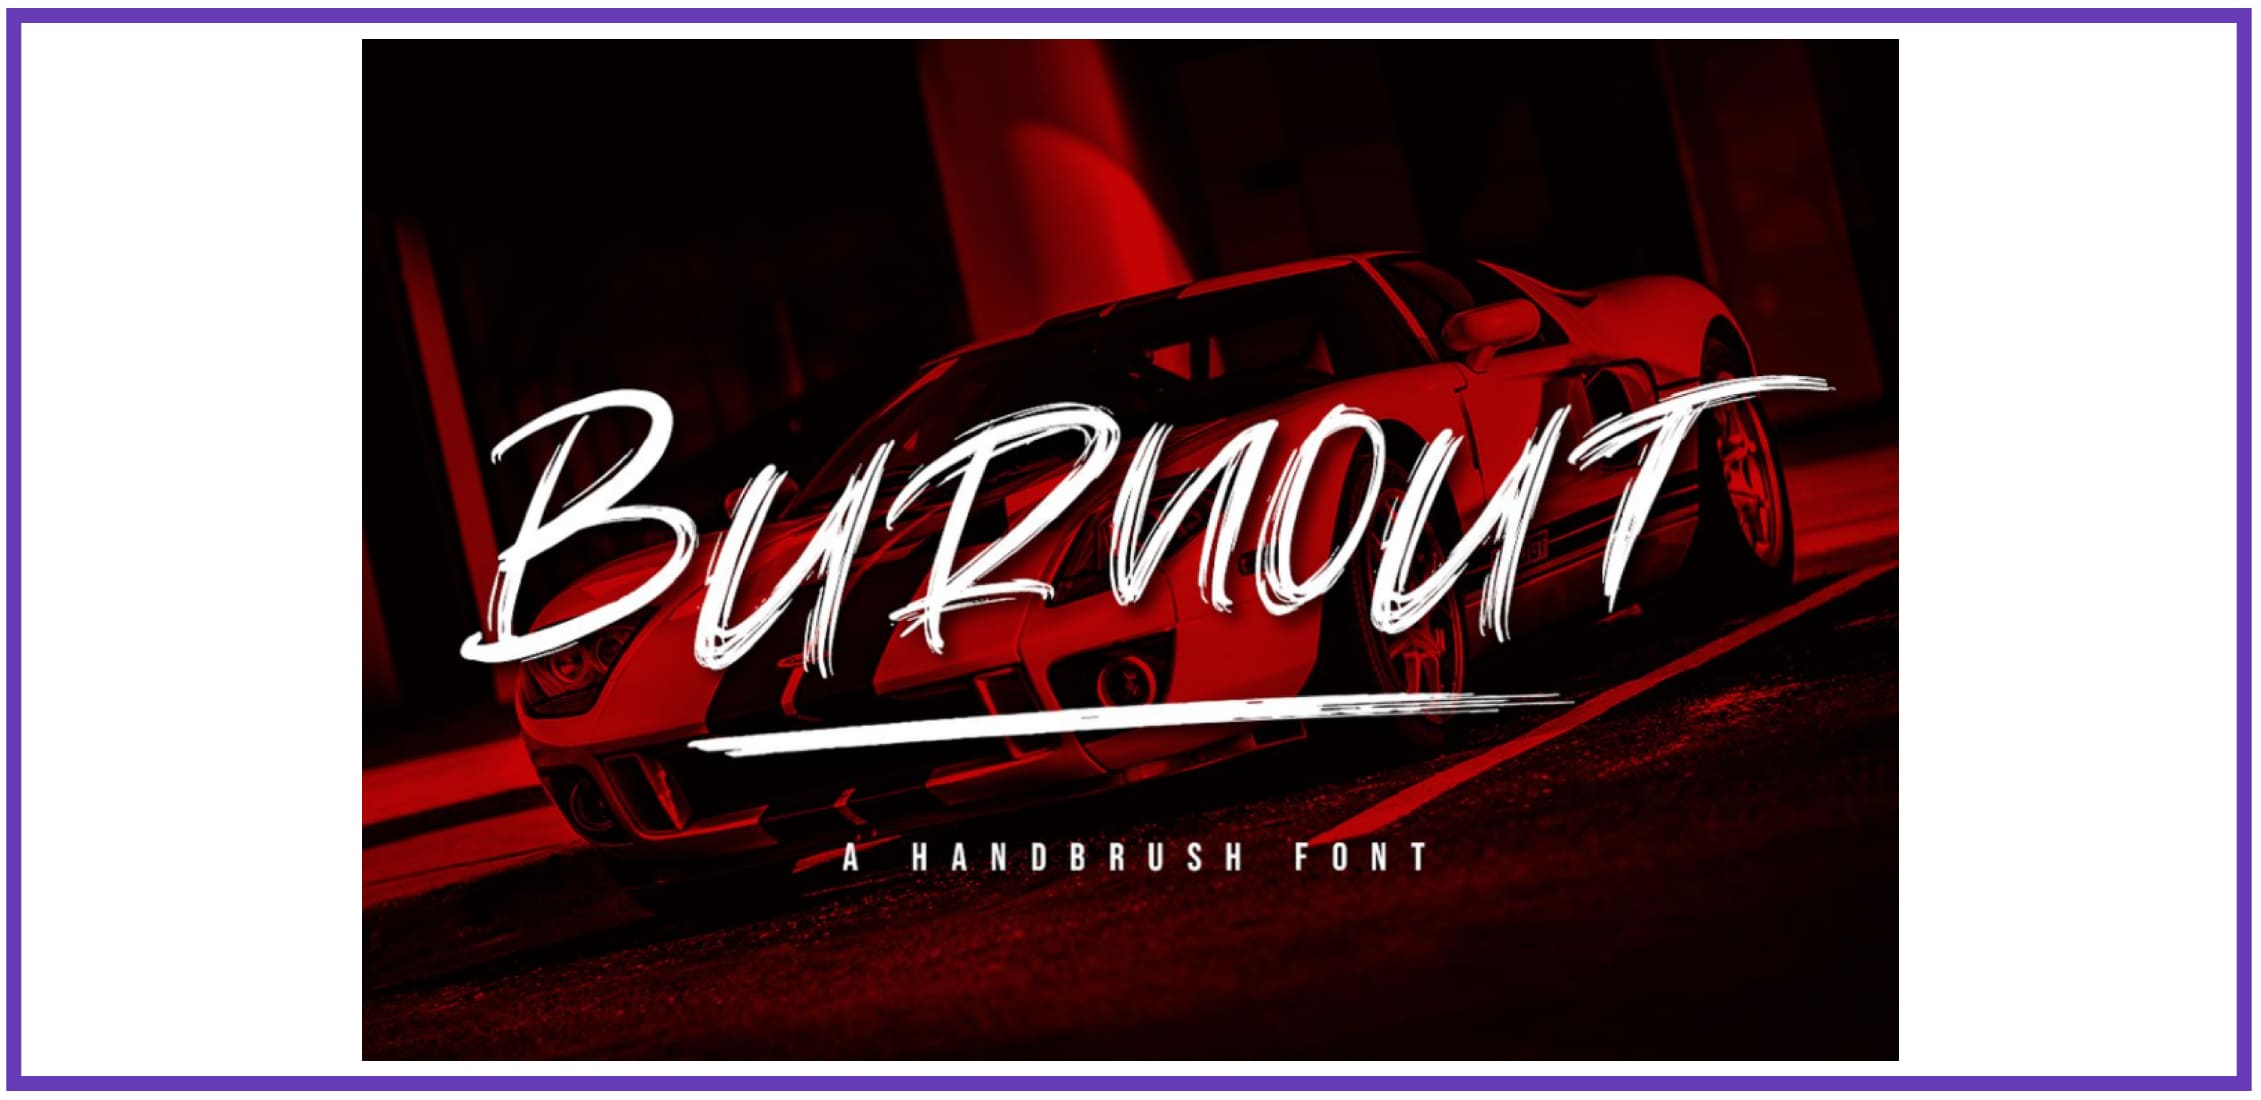 Handbrush Font By Graphue. Best Industrial Fonts.